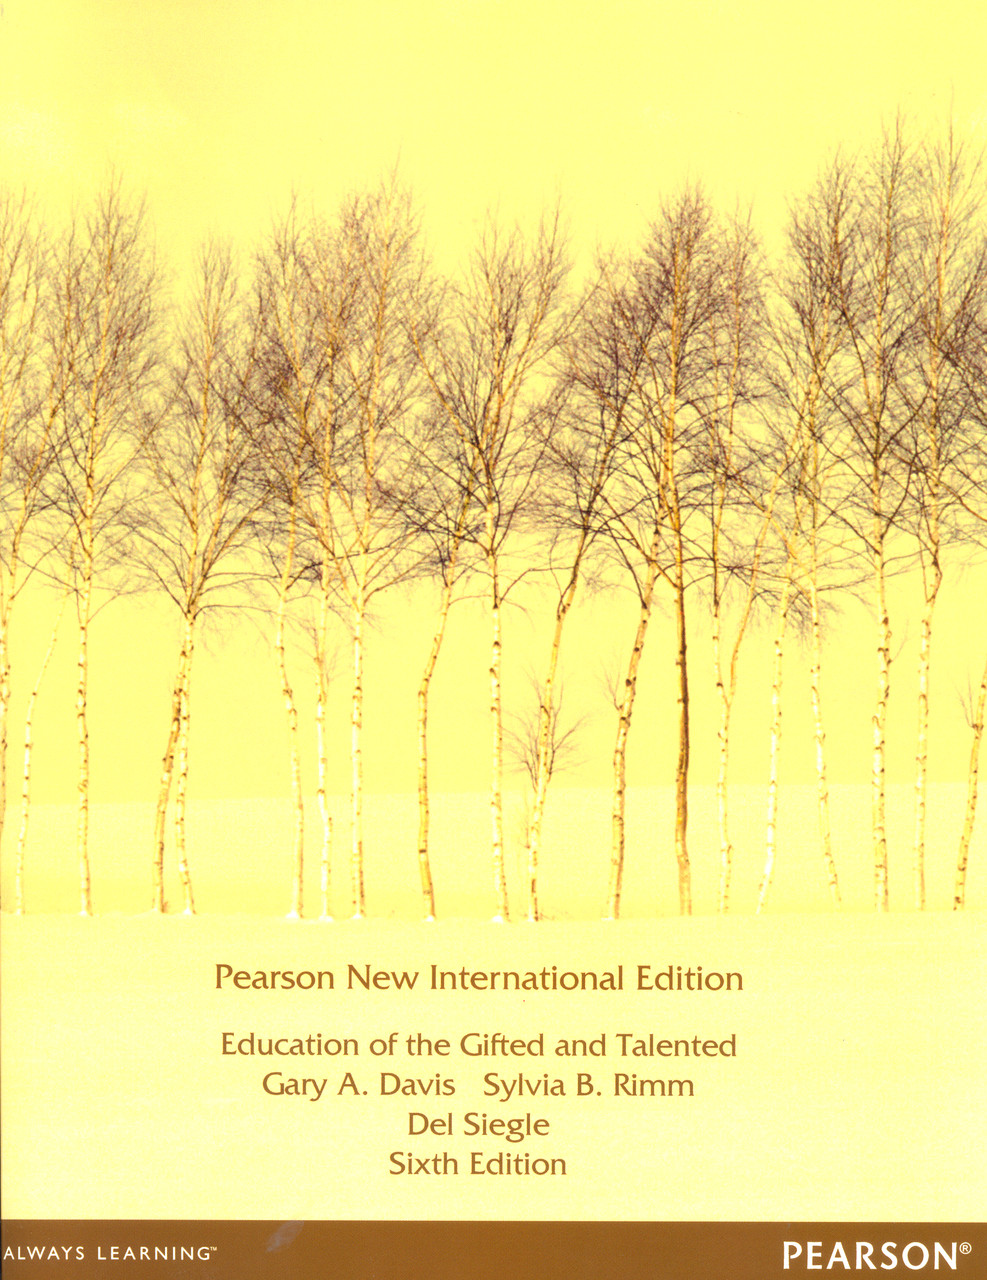 Education of the Gifted And Talented - 6th Edition